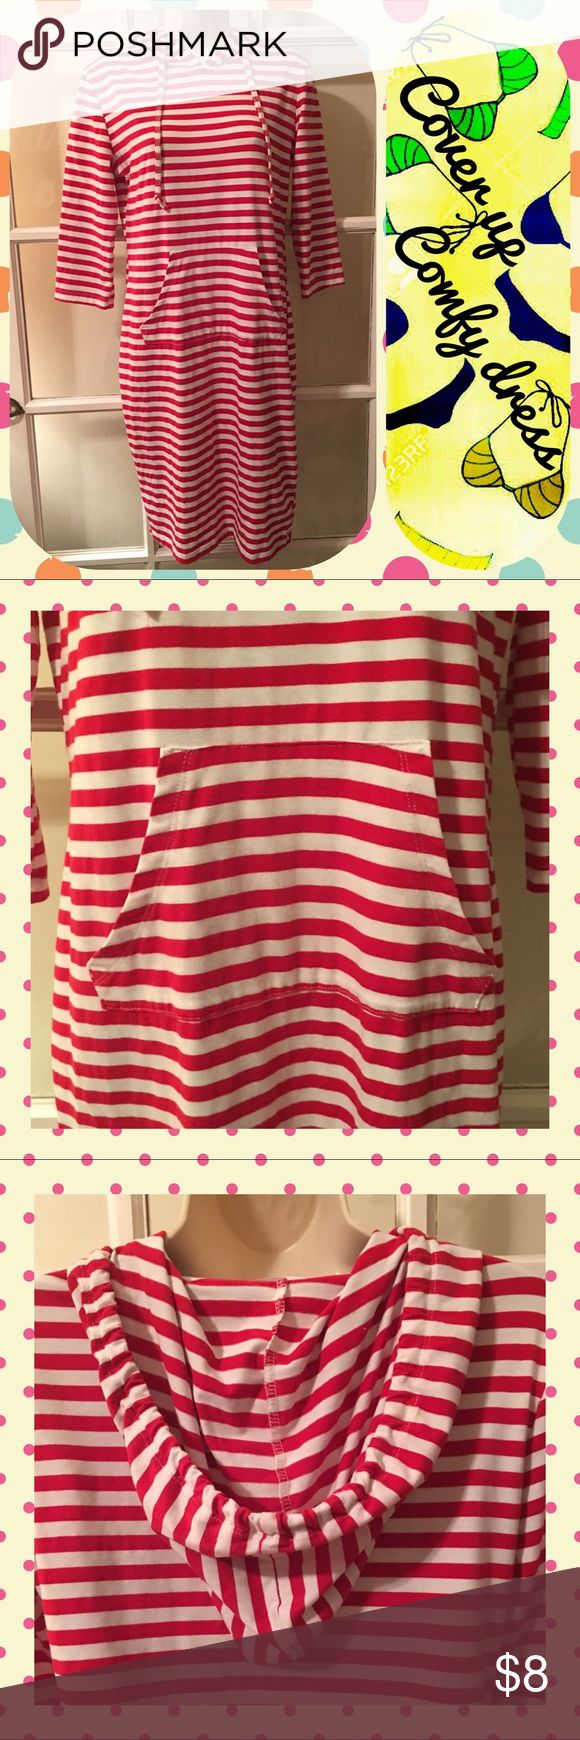 "🎈Striped cover up/dress🎈 🍎Red and white striped hooded dress/cover up size Large🎈Has a cute kangaroo pouch in the front and 3/4 sleeves🎈Bust measurement is approx 19.5"" from pit to pit🎈Like new, comfy and soft🎈 Dresses"